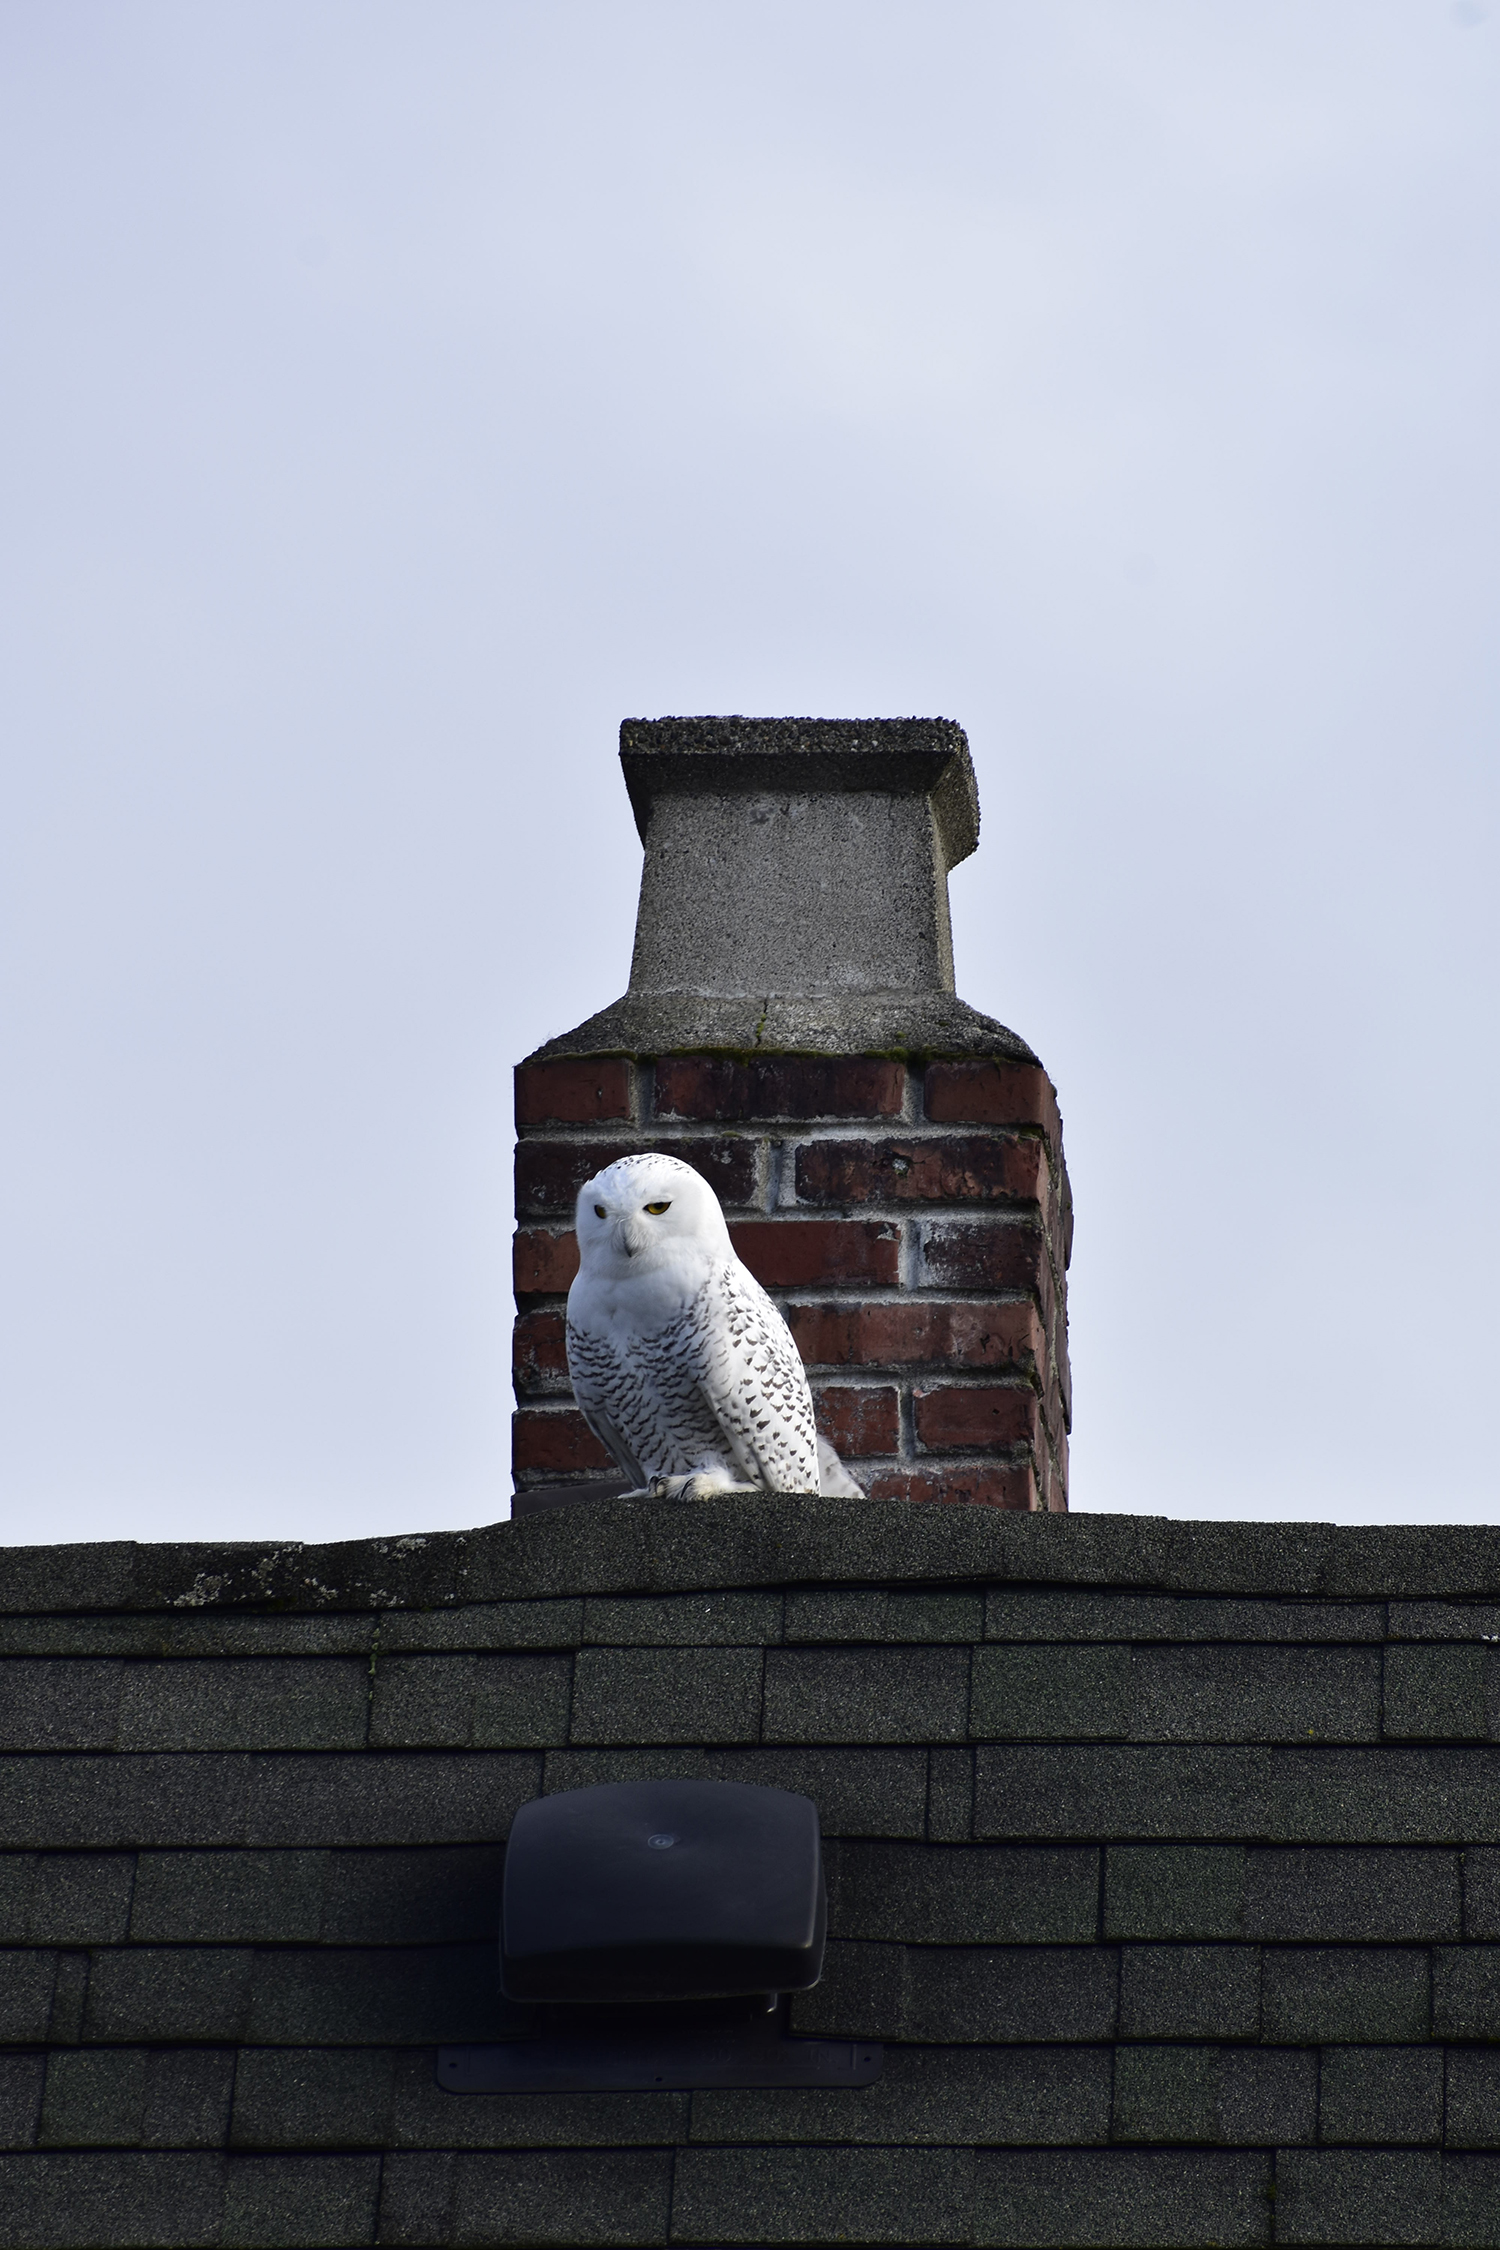 Residents of Seattle's Queen Anne neighborhood have a new, exciting neighbor! A snowy owl (extremely rare for the PNW) has taken up residence in the neighborhood as of this week. Neighbors first reported the sighting on Nextdoor, and have been affectionally calling the owl (whose gender is unknown) 'Reina' due to the crown on her head.{ } Just in the two days since she was spotted, folks have been lining up for a glimpse wherever she's reported that day! No nest has been seen/heard of, as of this posting. (Image: Maile Anderson / Seattle Refined){ }